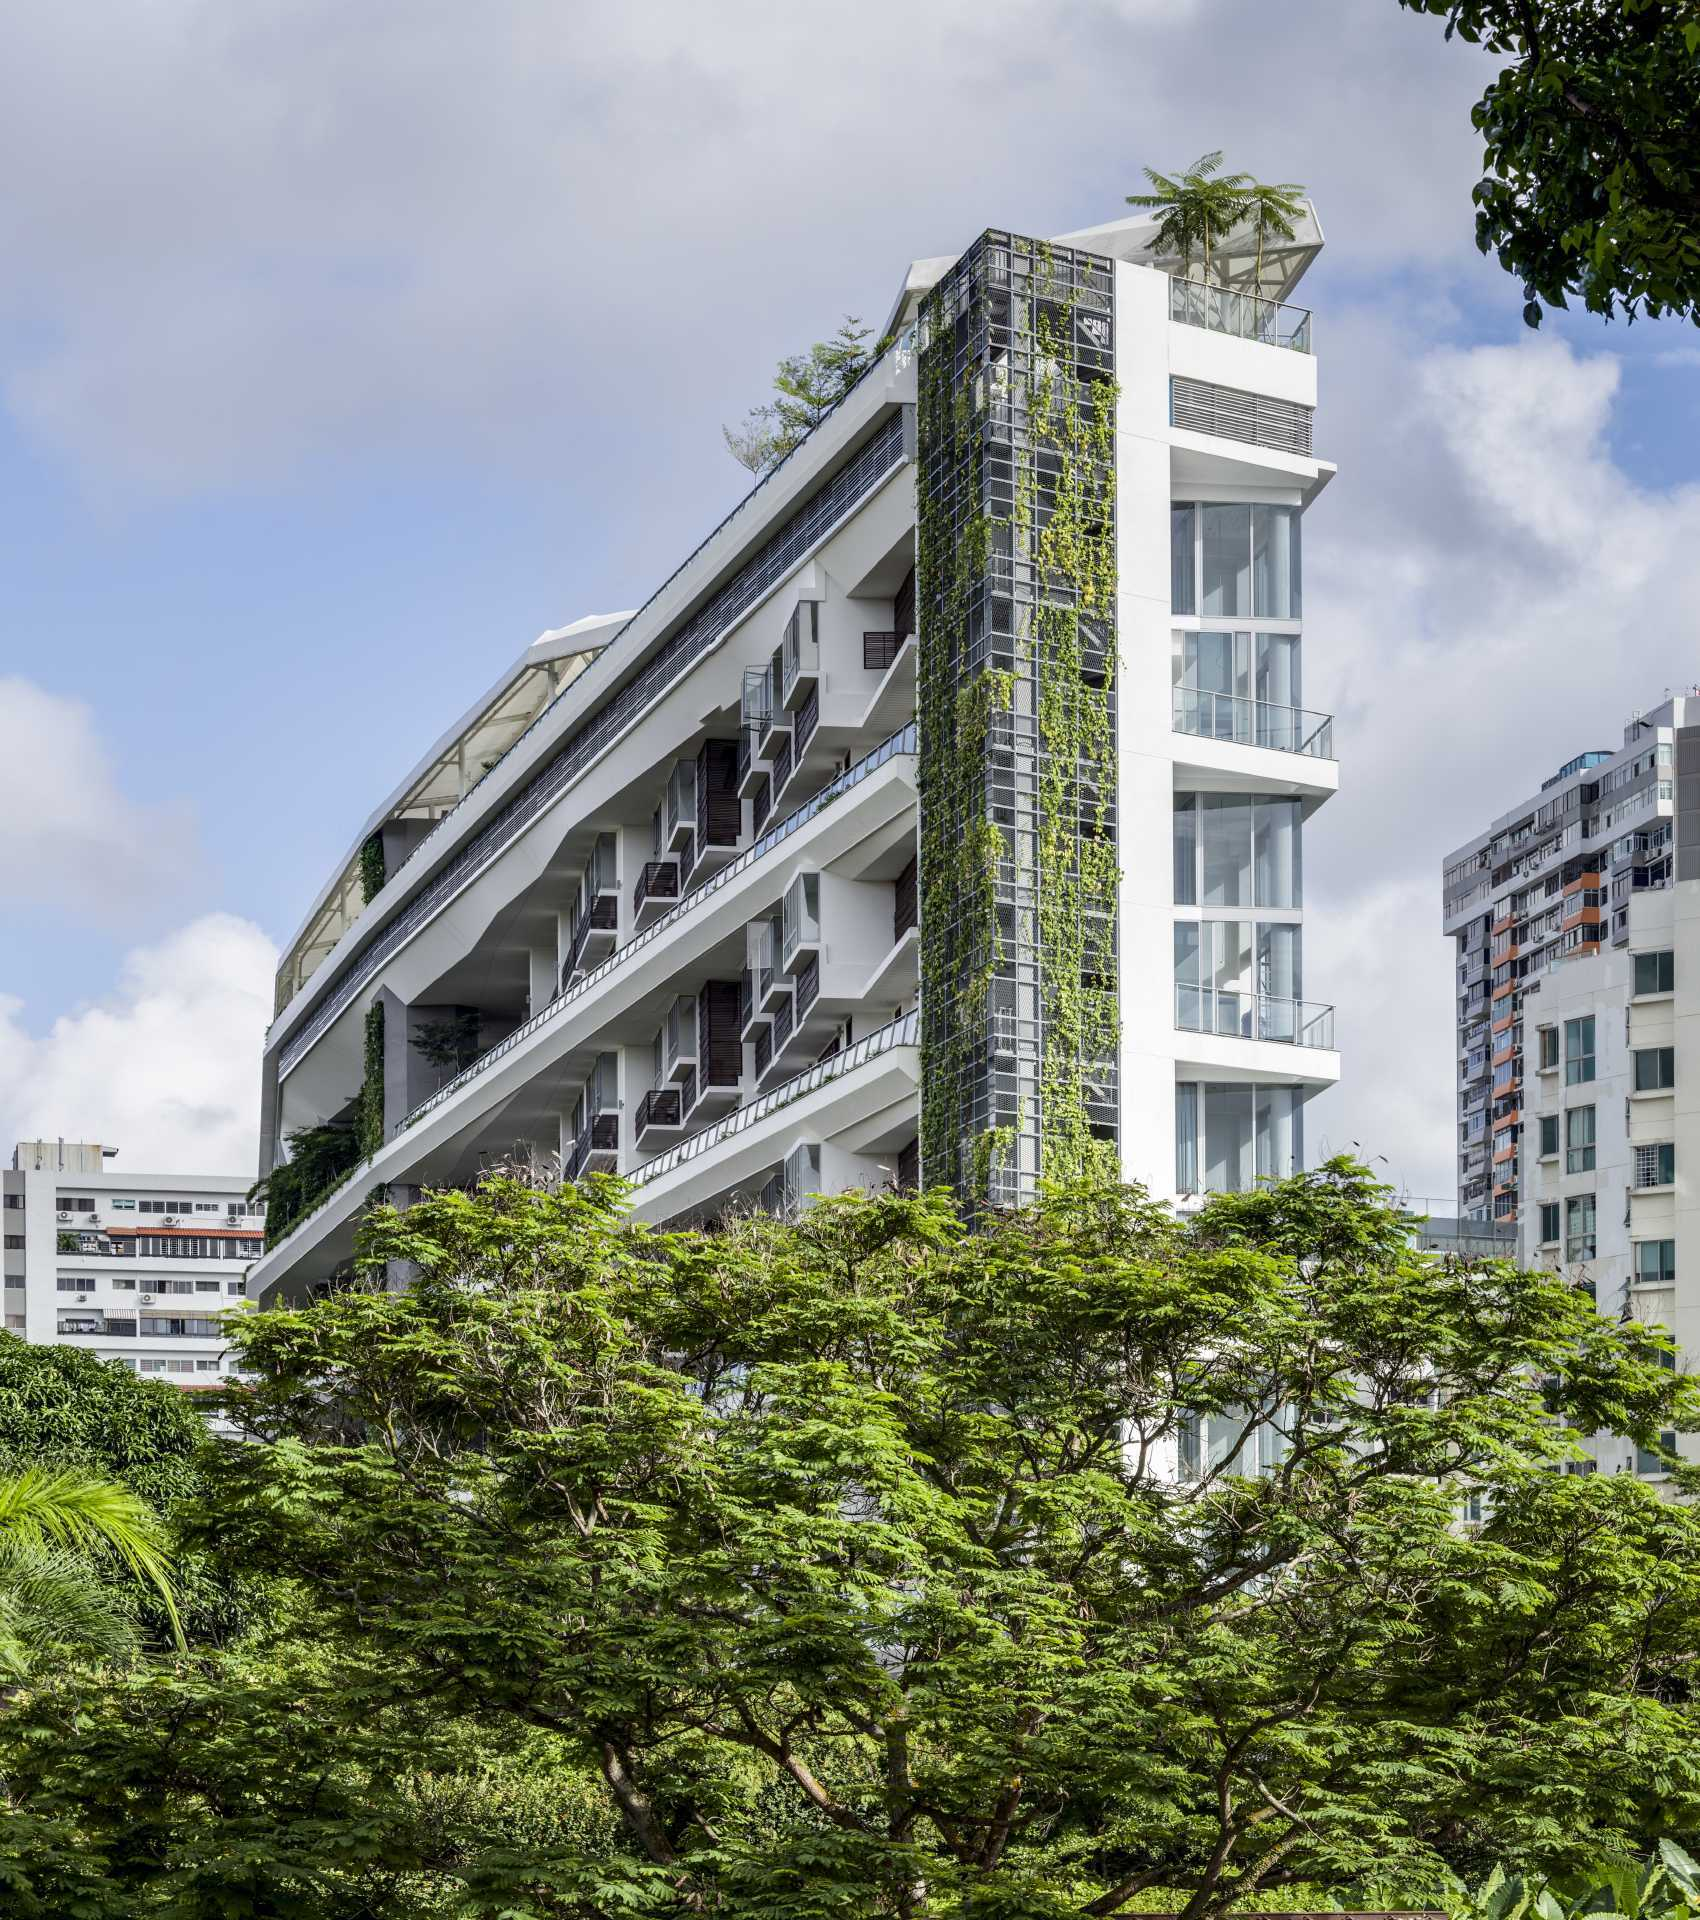 Jardin - the development emerging out of a nestle of green and foliage